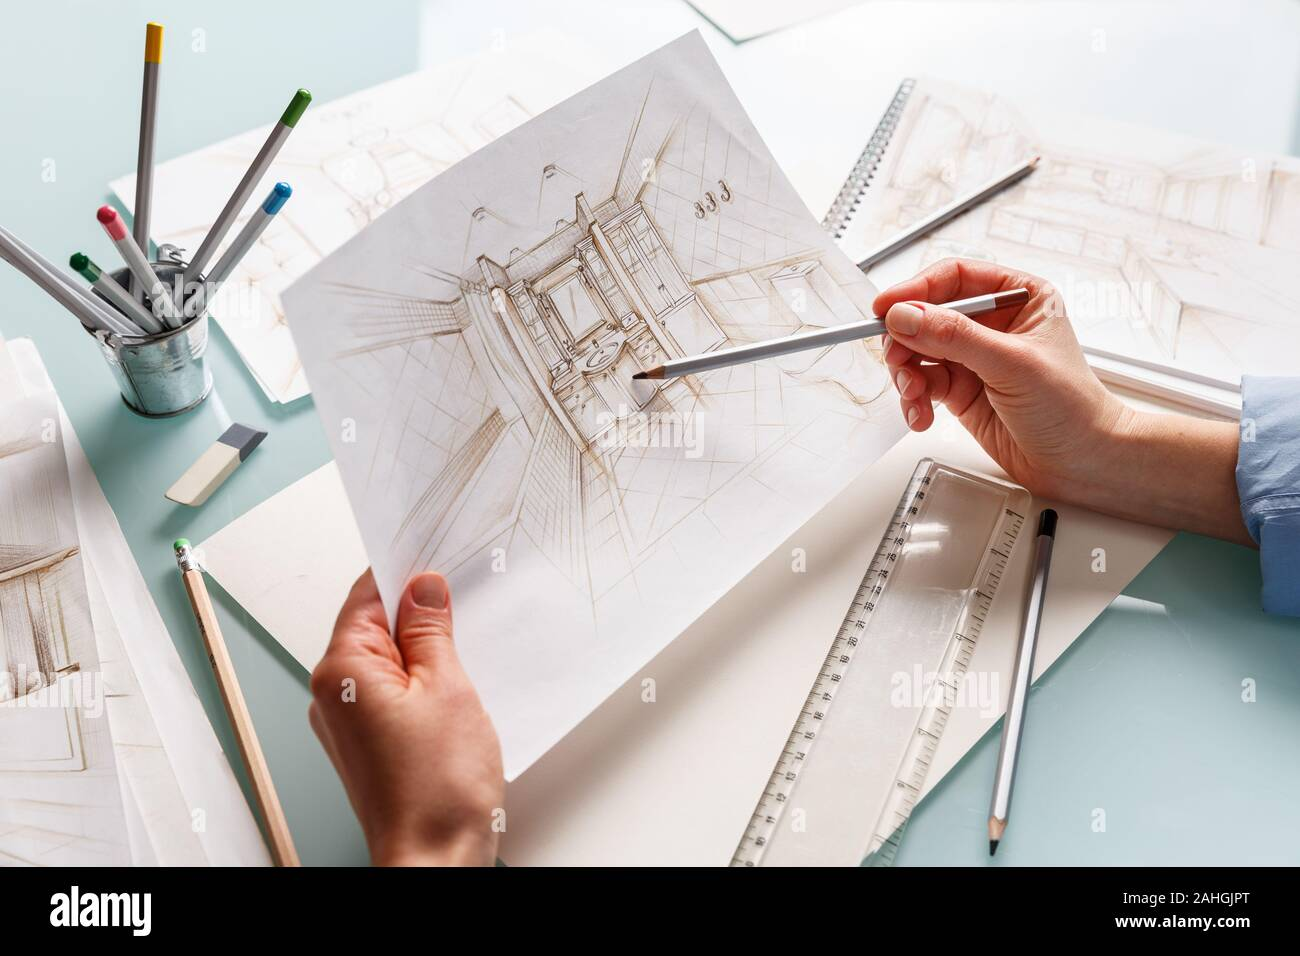 Interior Designer Holding Hand Drawing Pencil Sketch Of A Bathroom Interior Design Projects Concept Stock Photo Alamy